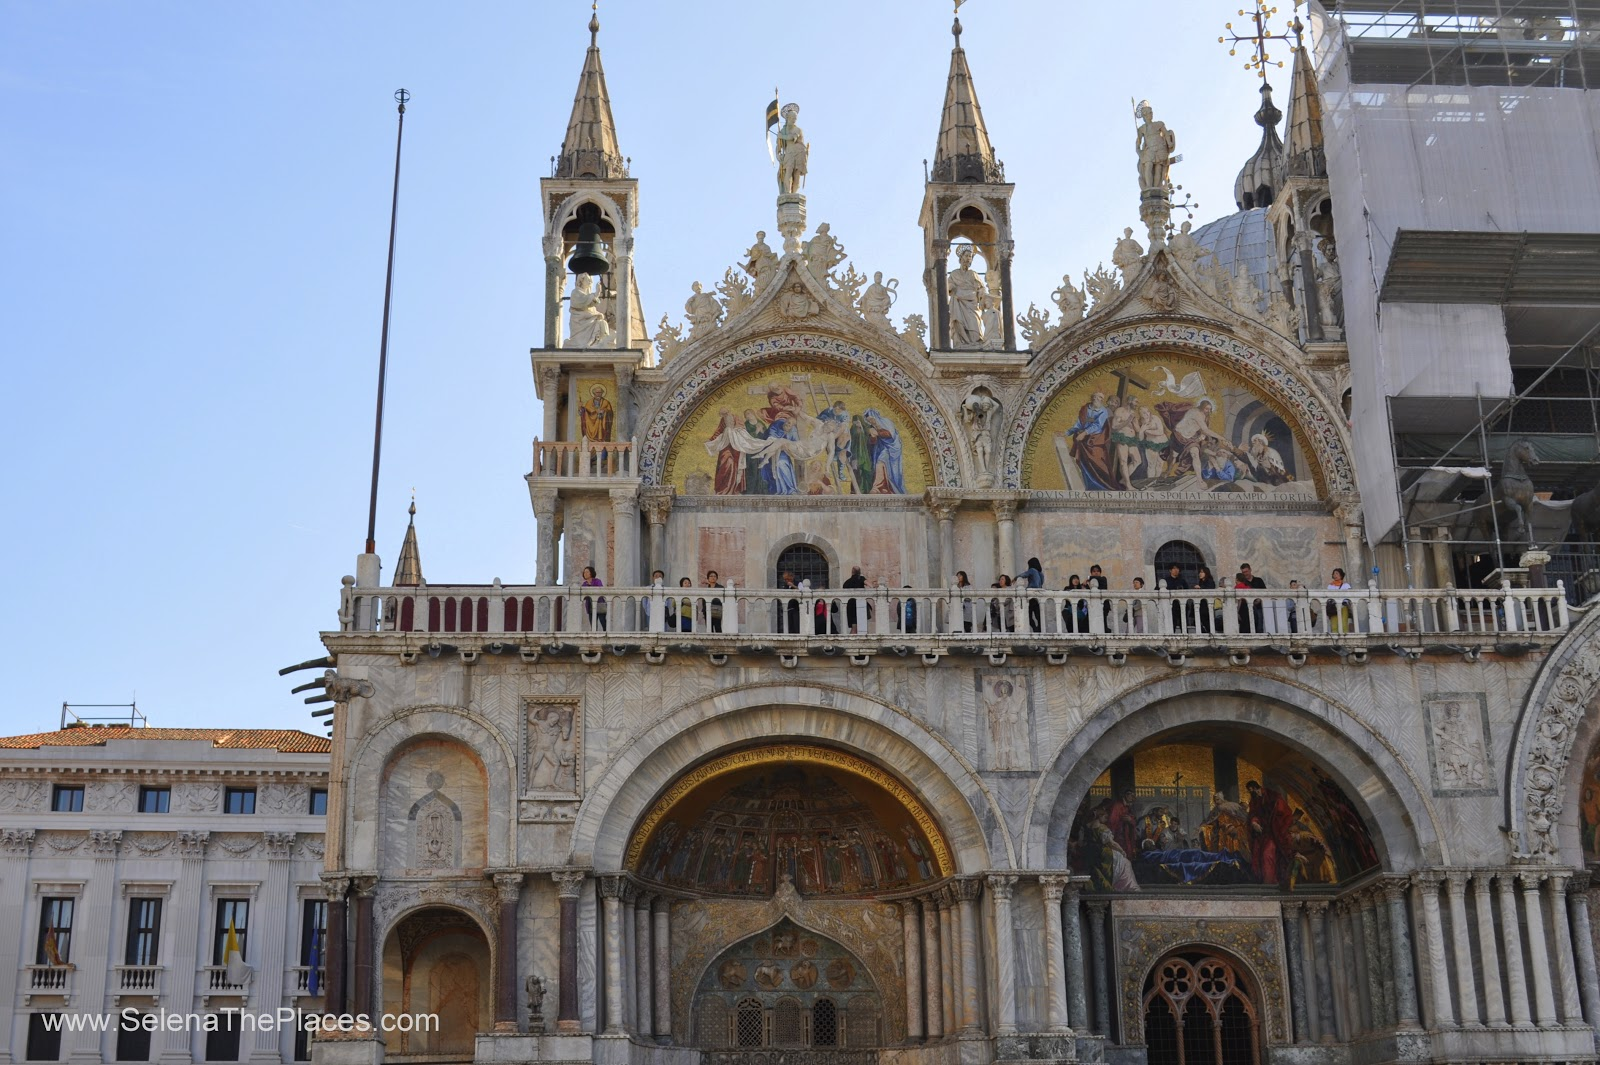 Piazzo San Marco in Venice